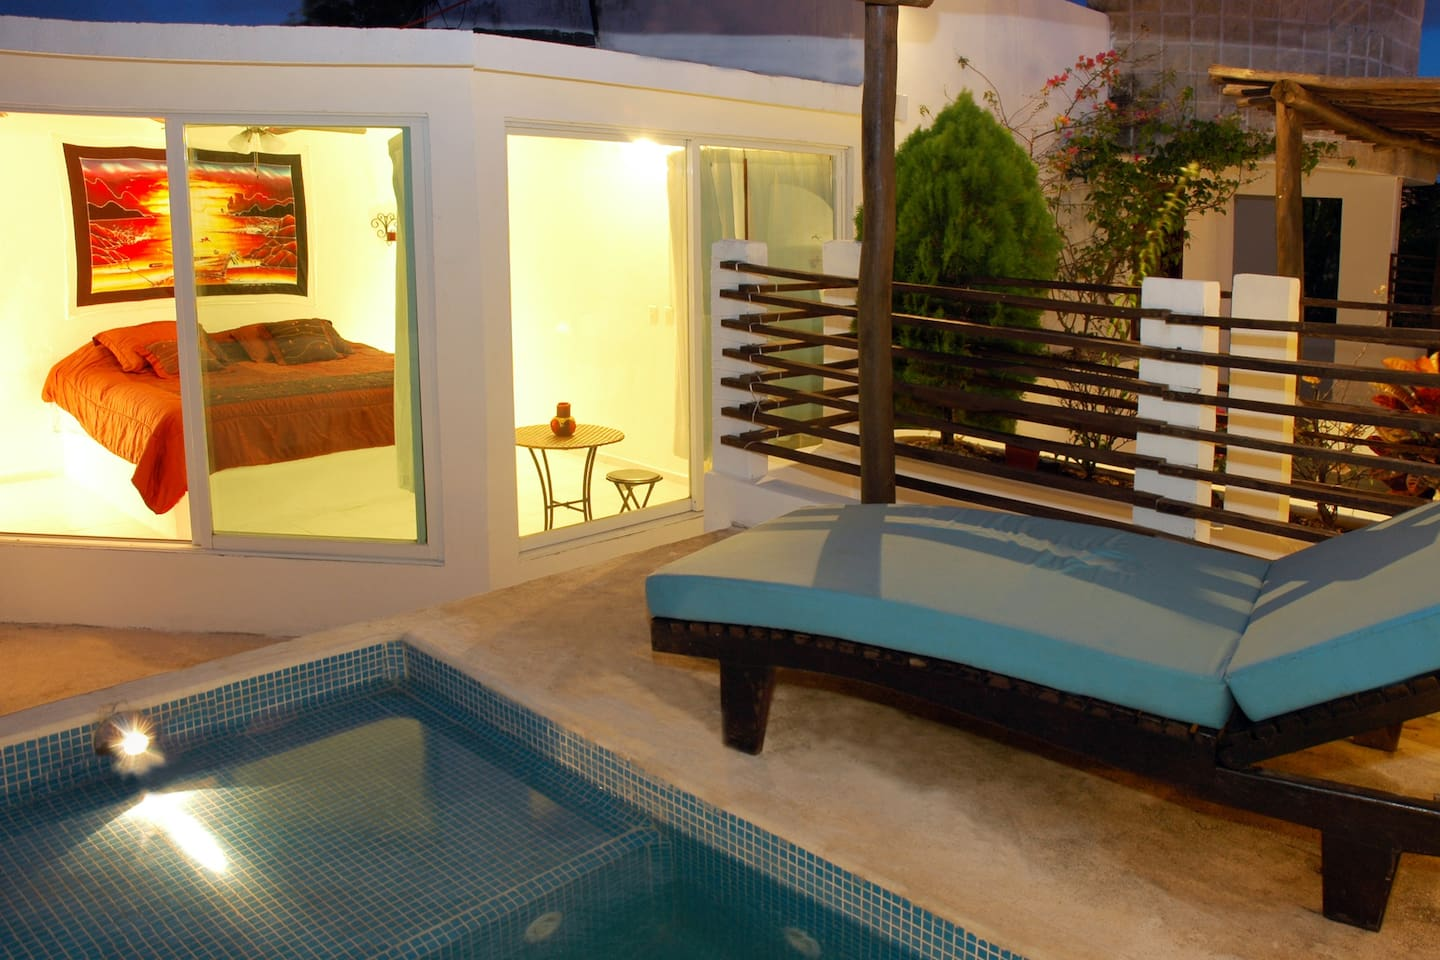 private pool step away from king Size bedroom